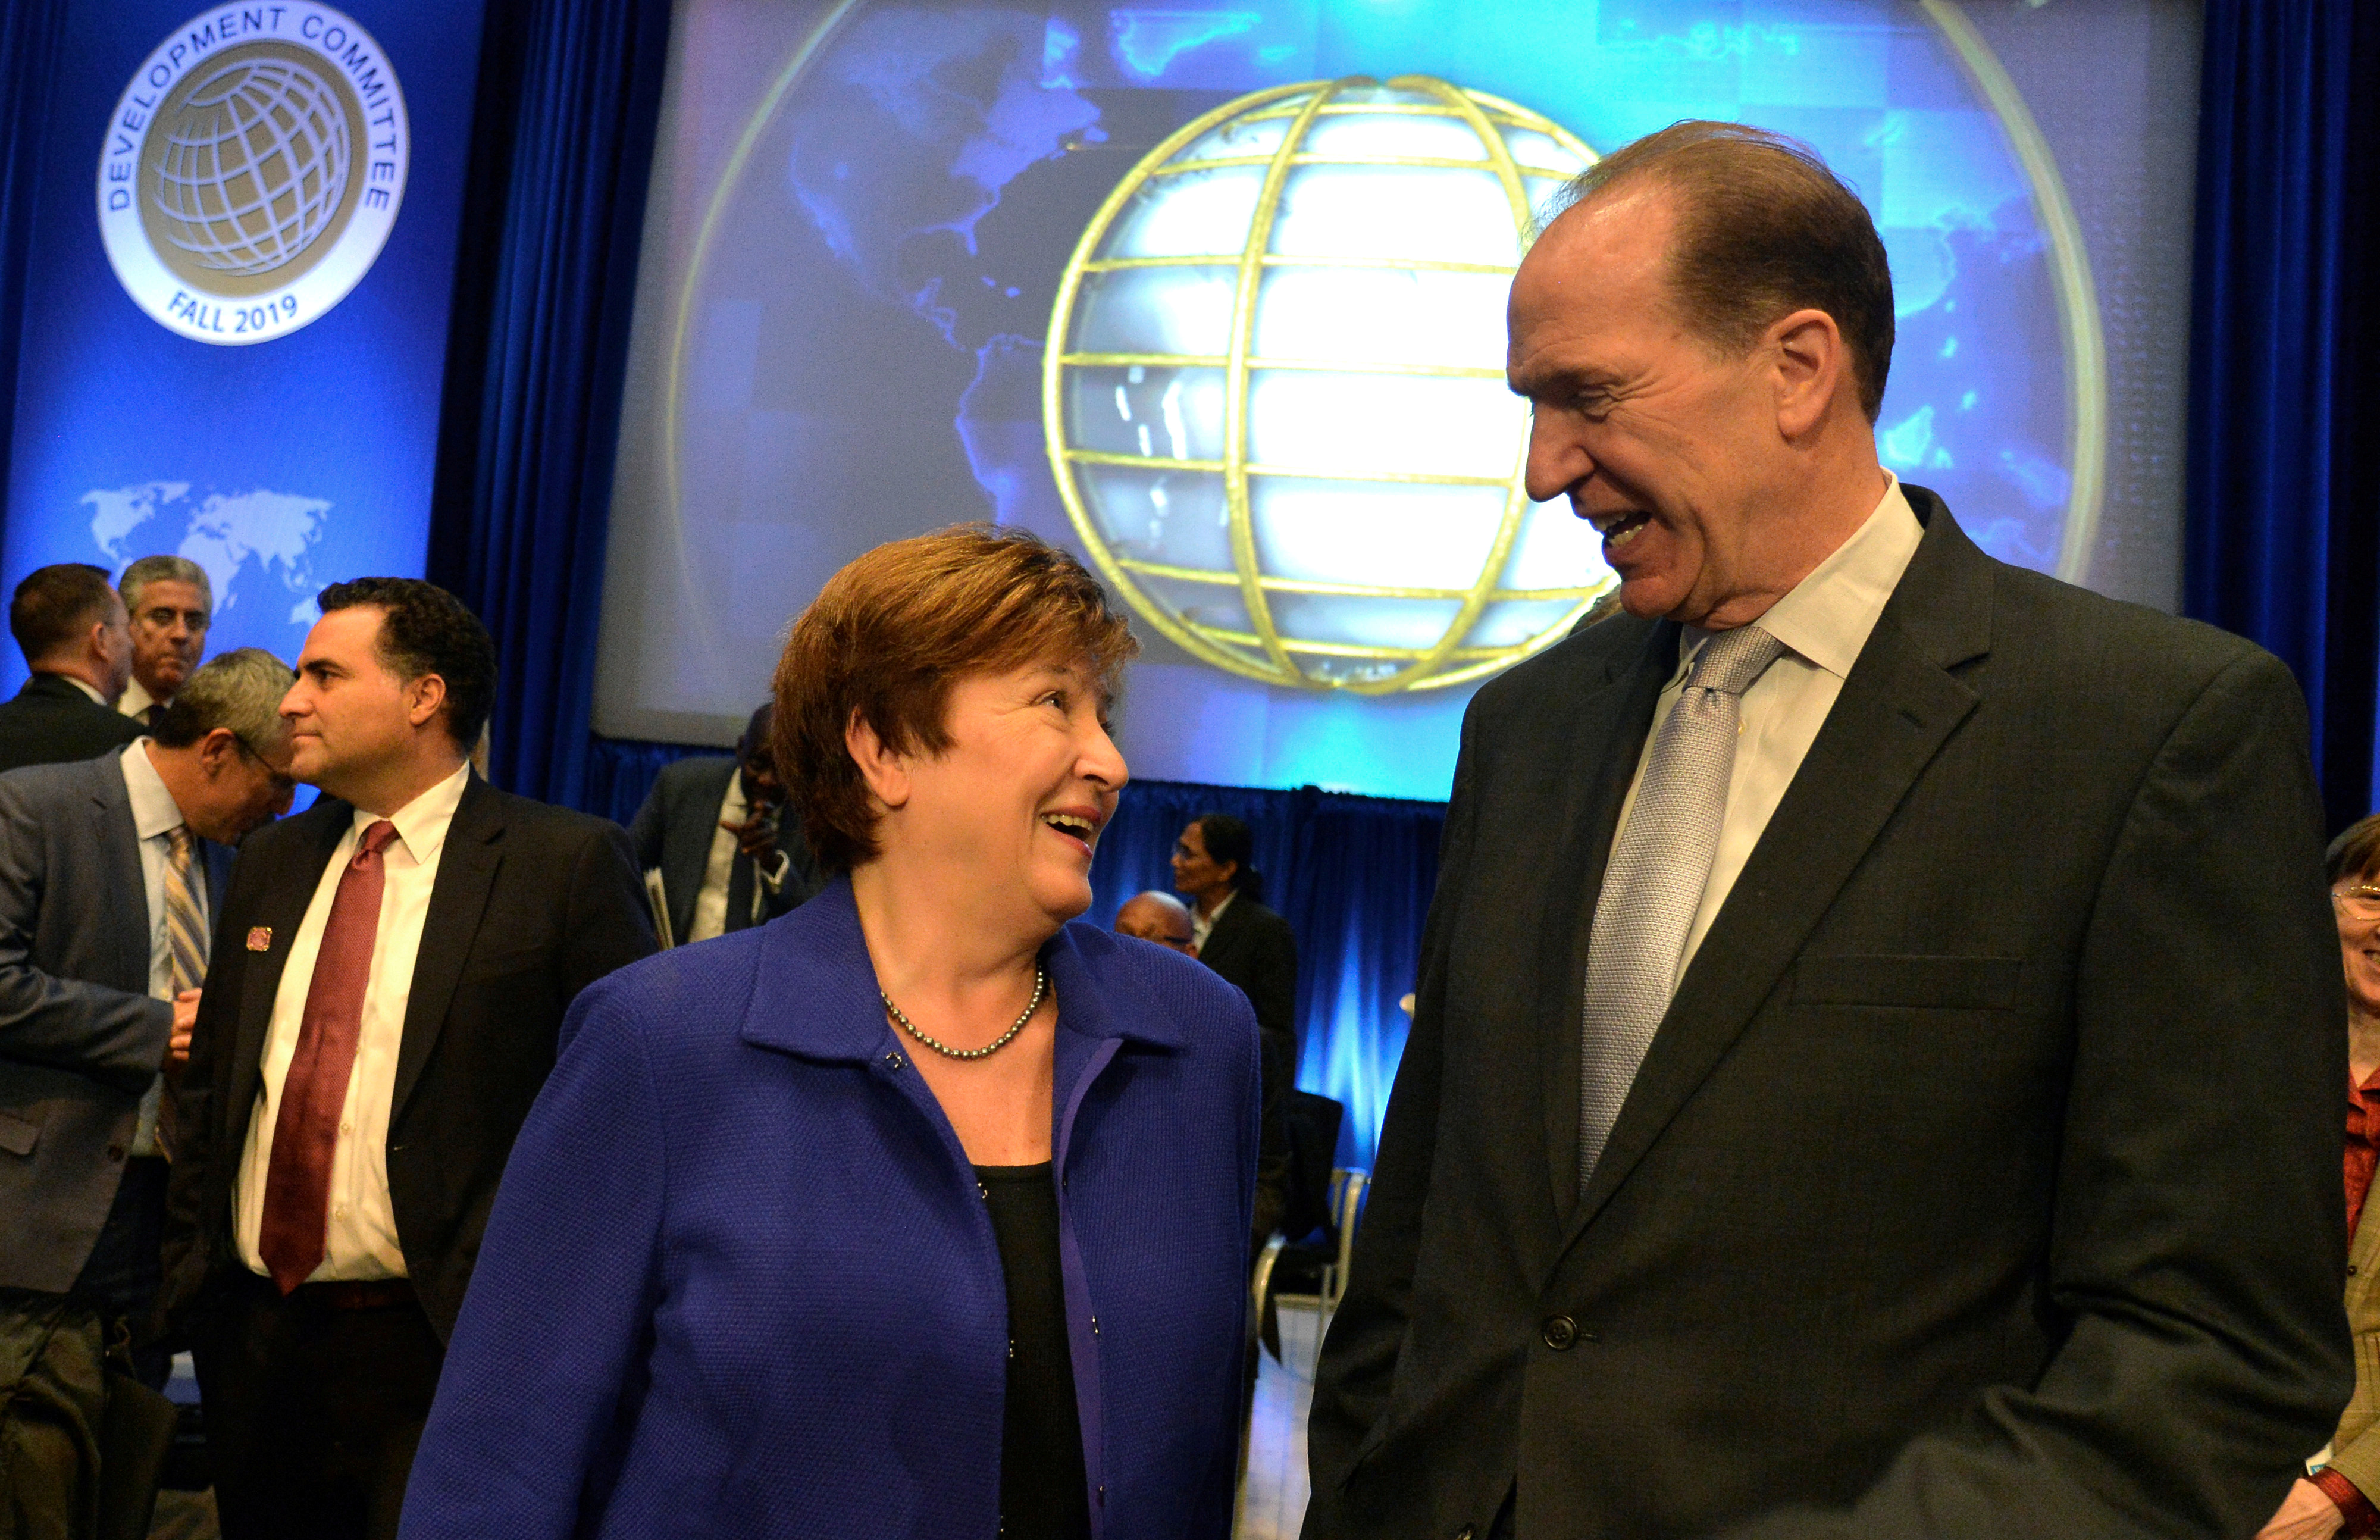 IMF Managing Director Kristalina Georgieva President David Malpass prior to a Development Committee meeting, during the IMF and World Bank's 2019 Annual Meetings of finance ministers and bank governors, in Washington, U.S., October 19, 2019. REUTERS/Mike Theiler/File Photo